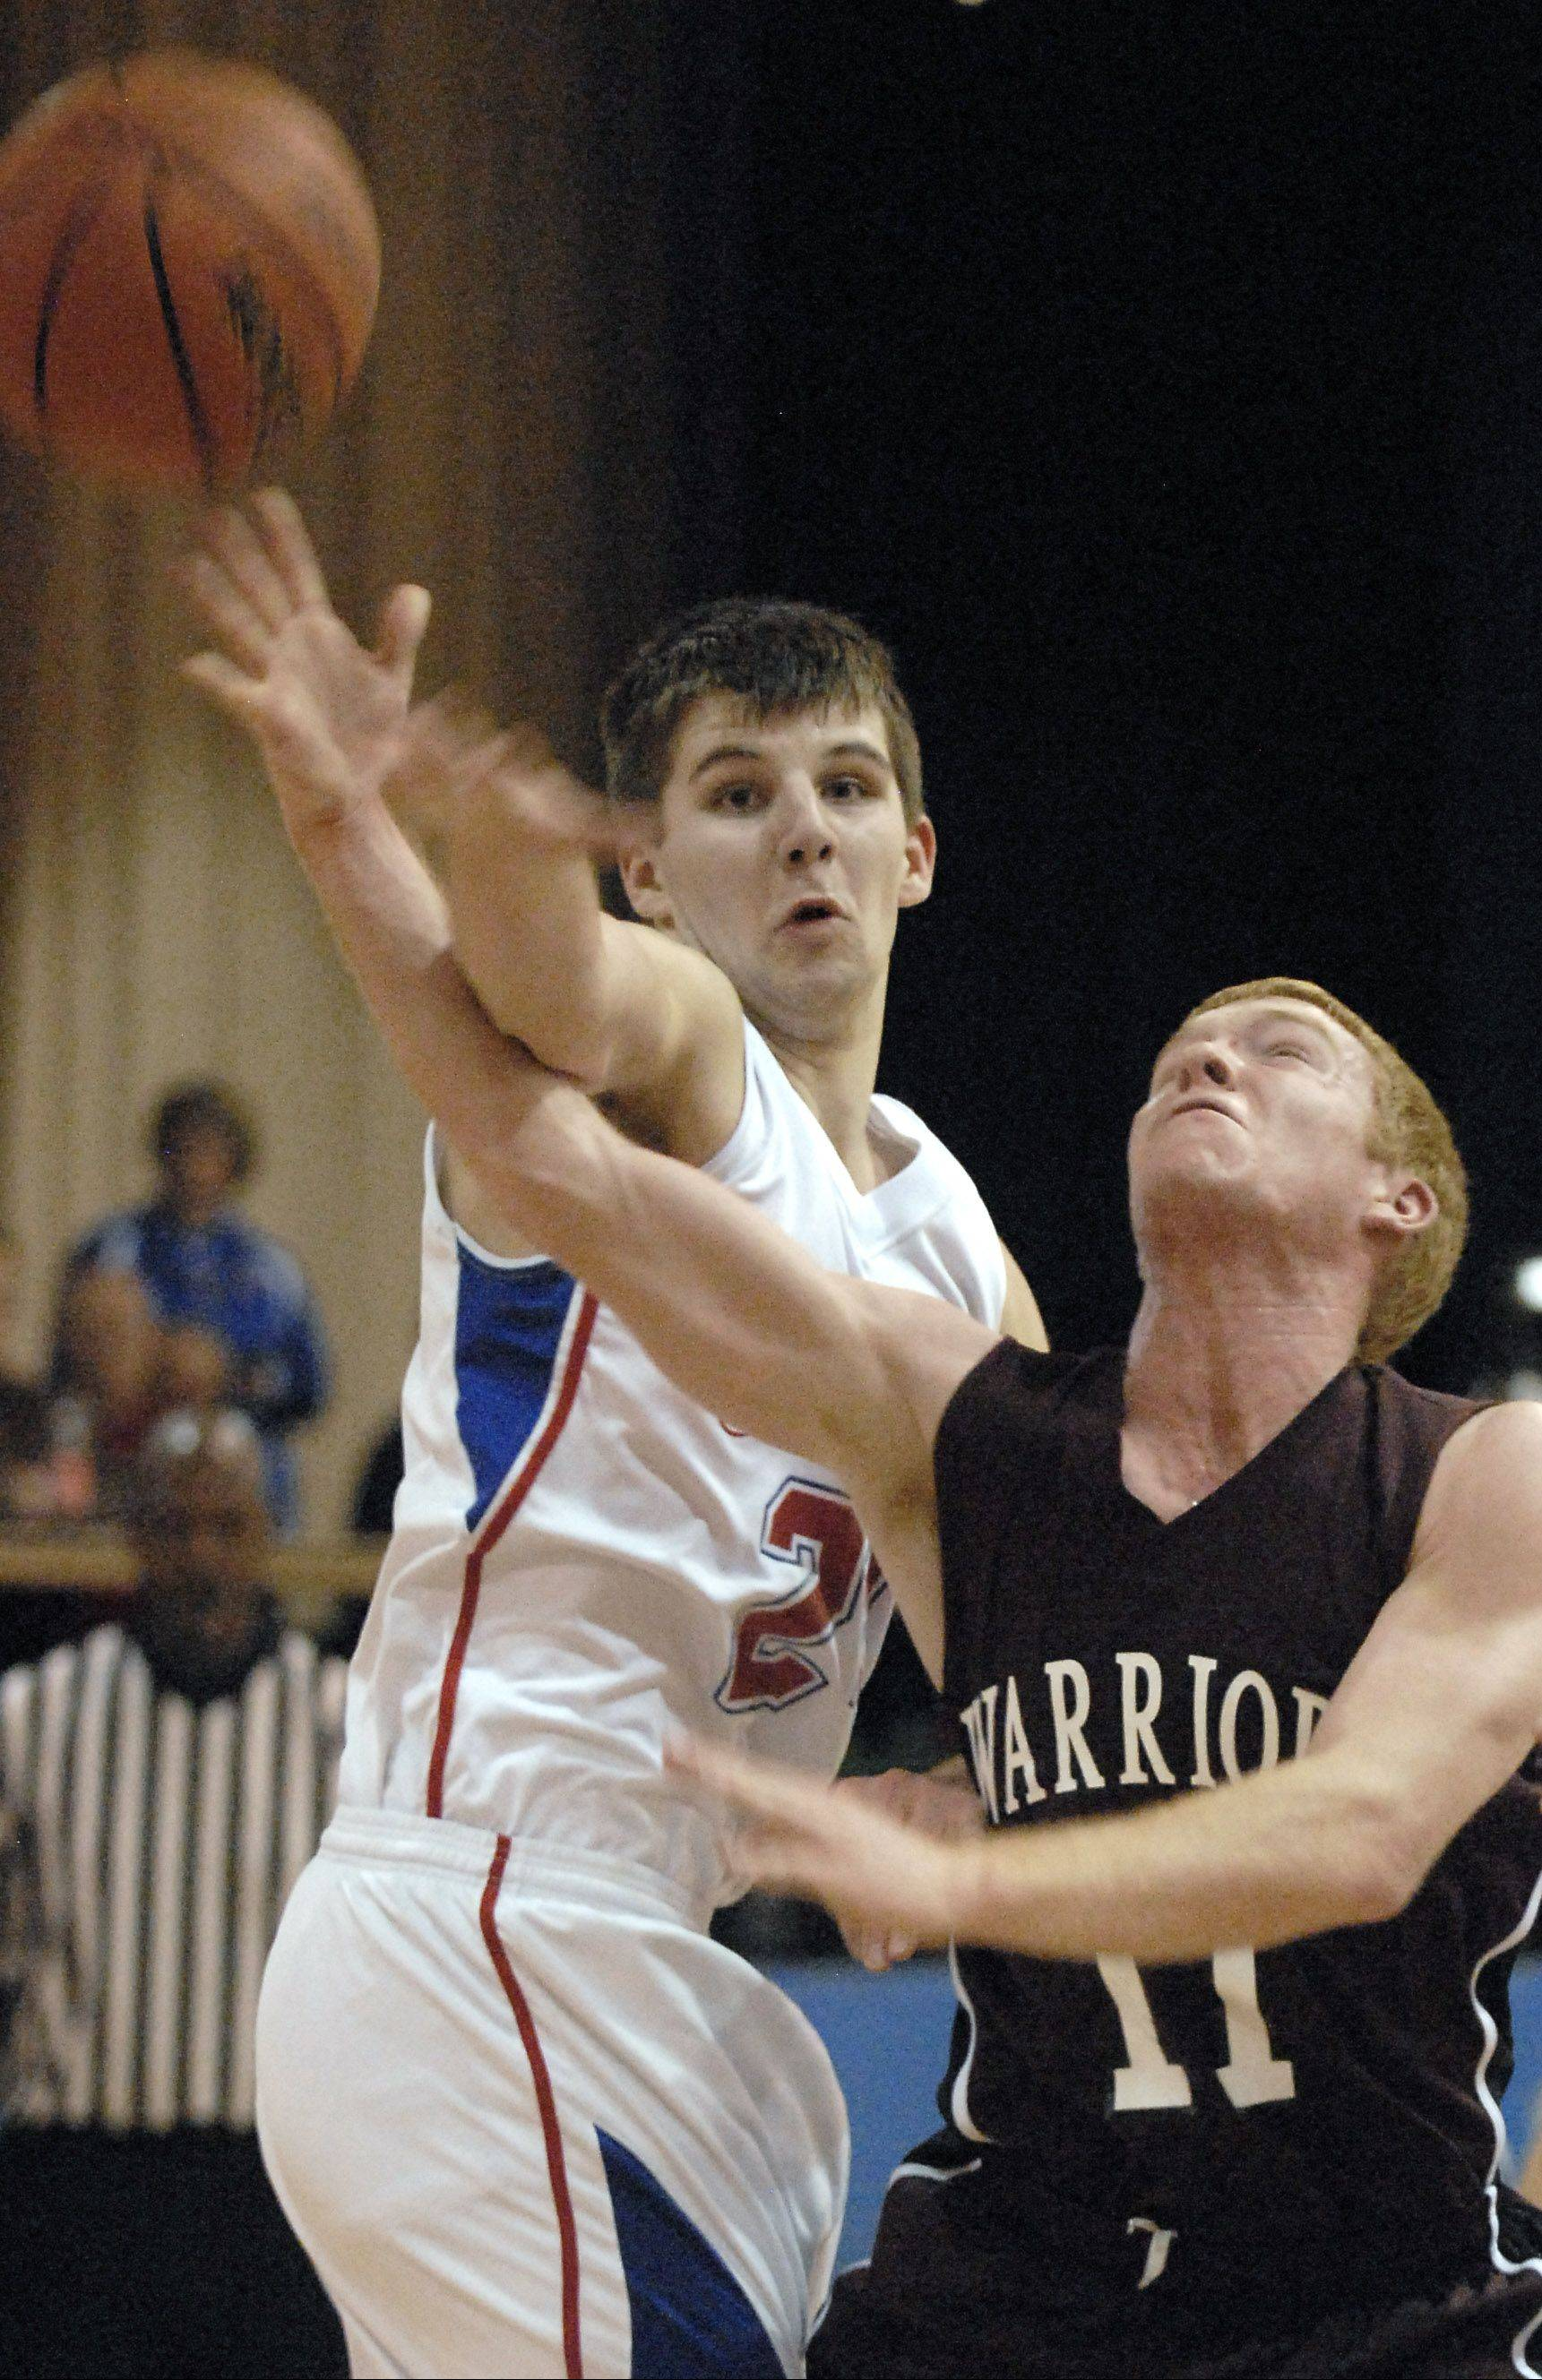 At 6-feet-5, Colin Kavanaugh gives Marmion a strong inside game.